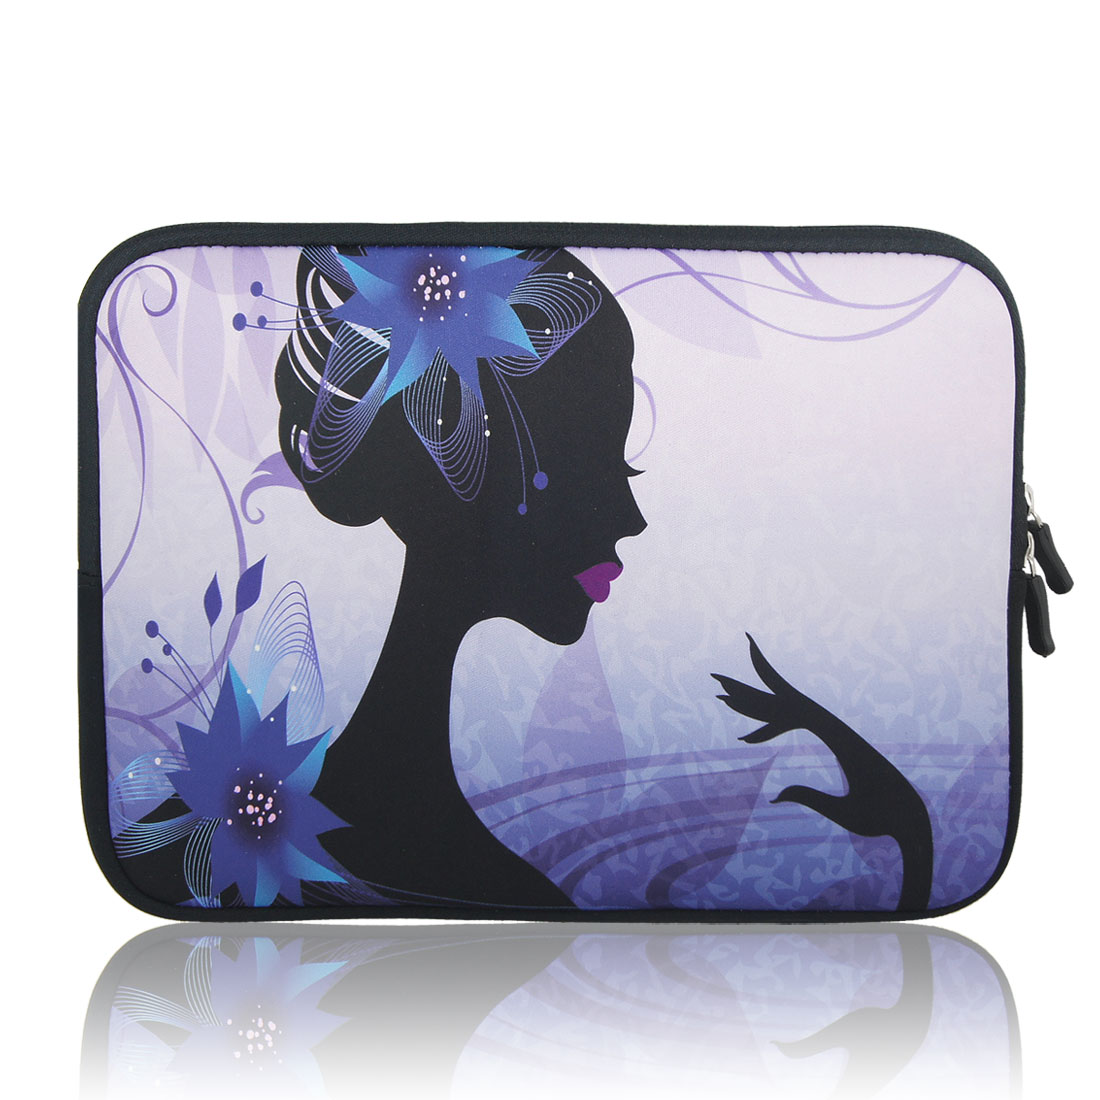 "Pretty Girl 10"" 10.1"" 10.2"" Neoprene Notebook Laptop Sleeve Bag Case for Asus"